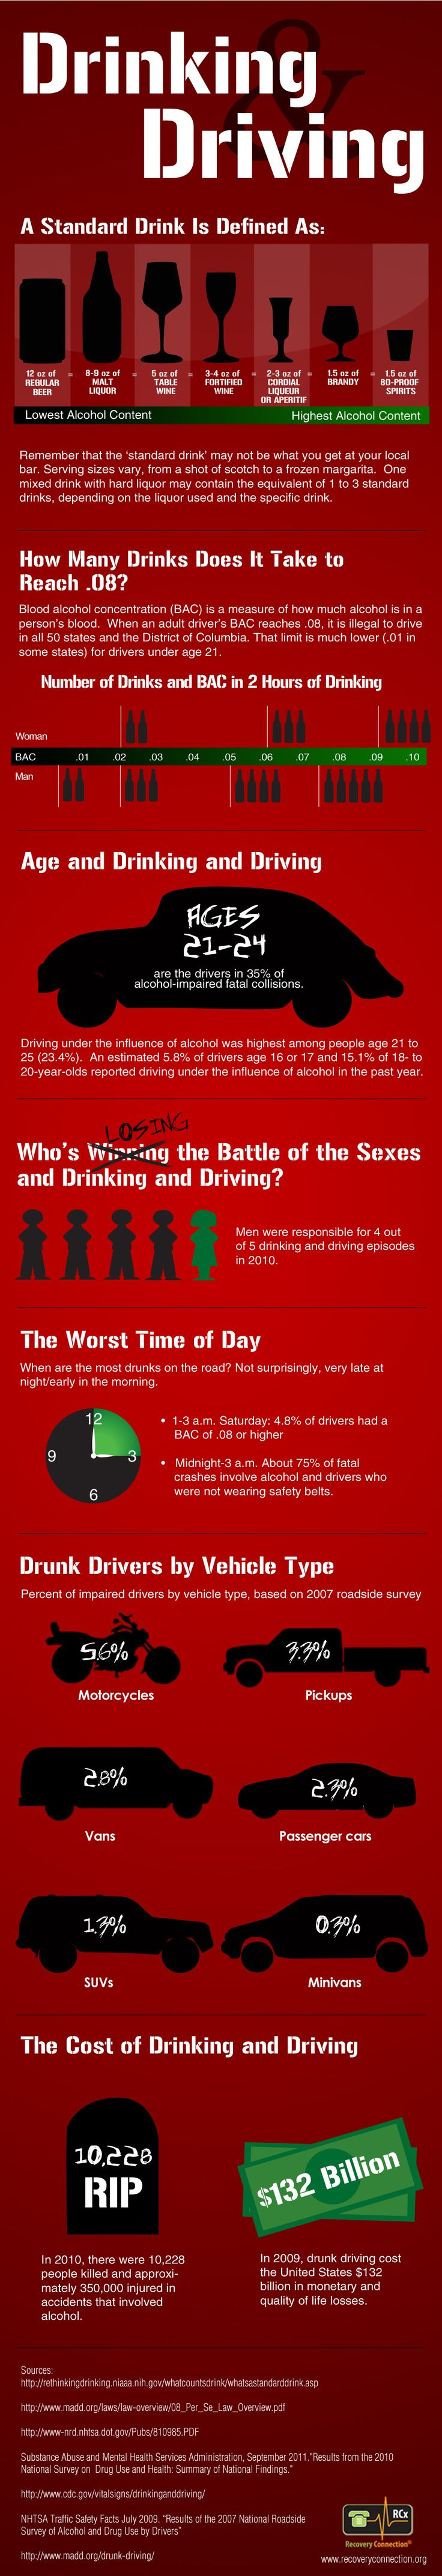 Facts on Drunk Driving & Alcohol. #Infogram. #DUI #MADD @Neely James Against Drunk Driving (MADD)